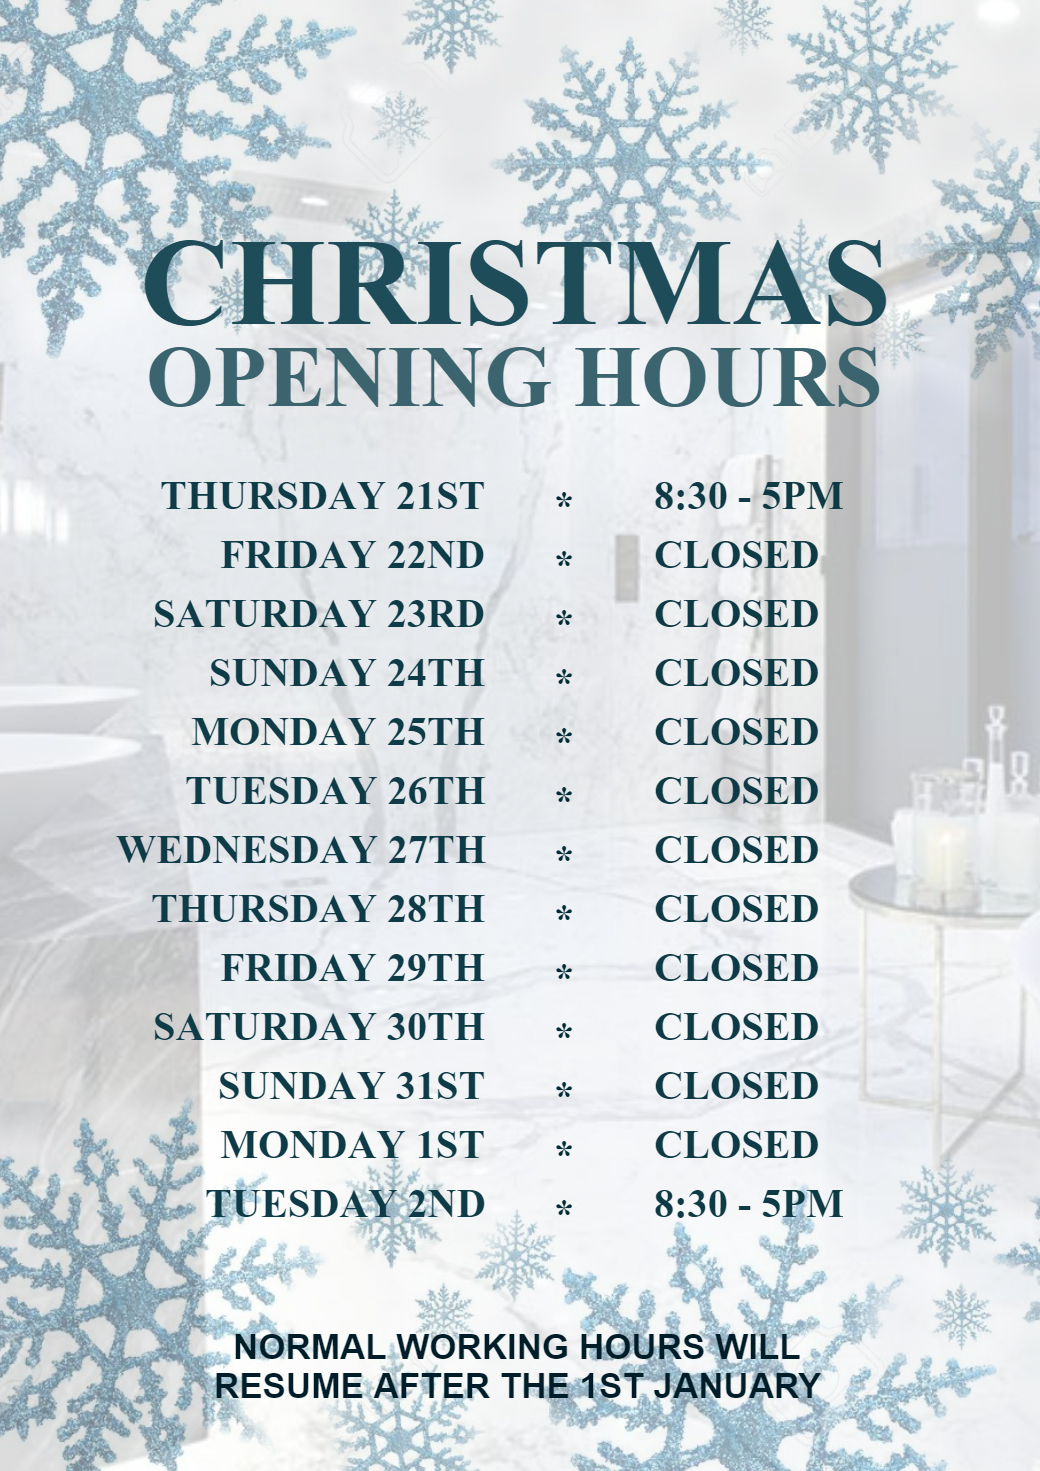 CHRISTMAS CLOSING HOURS